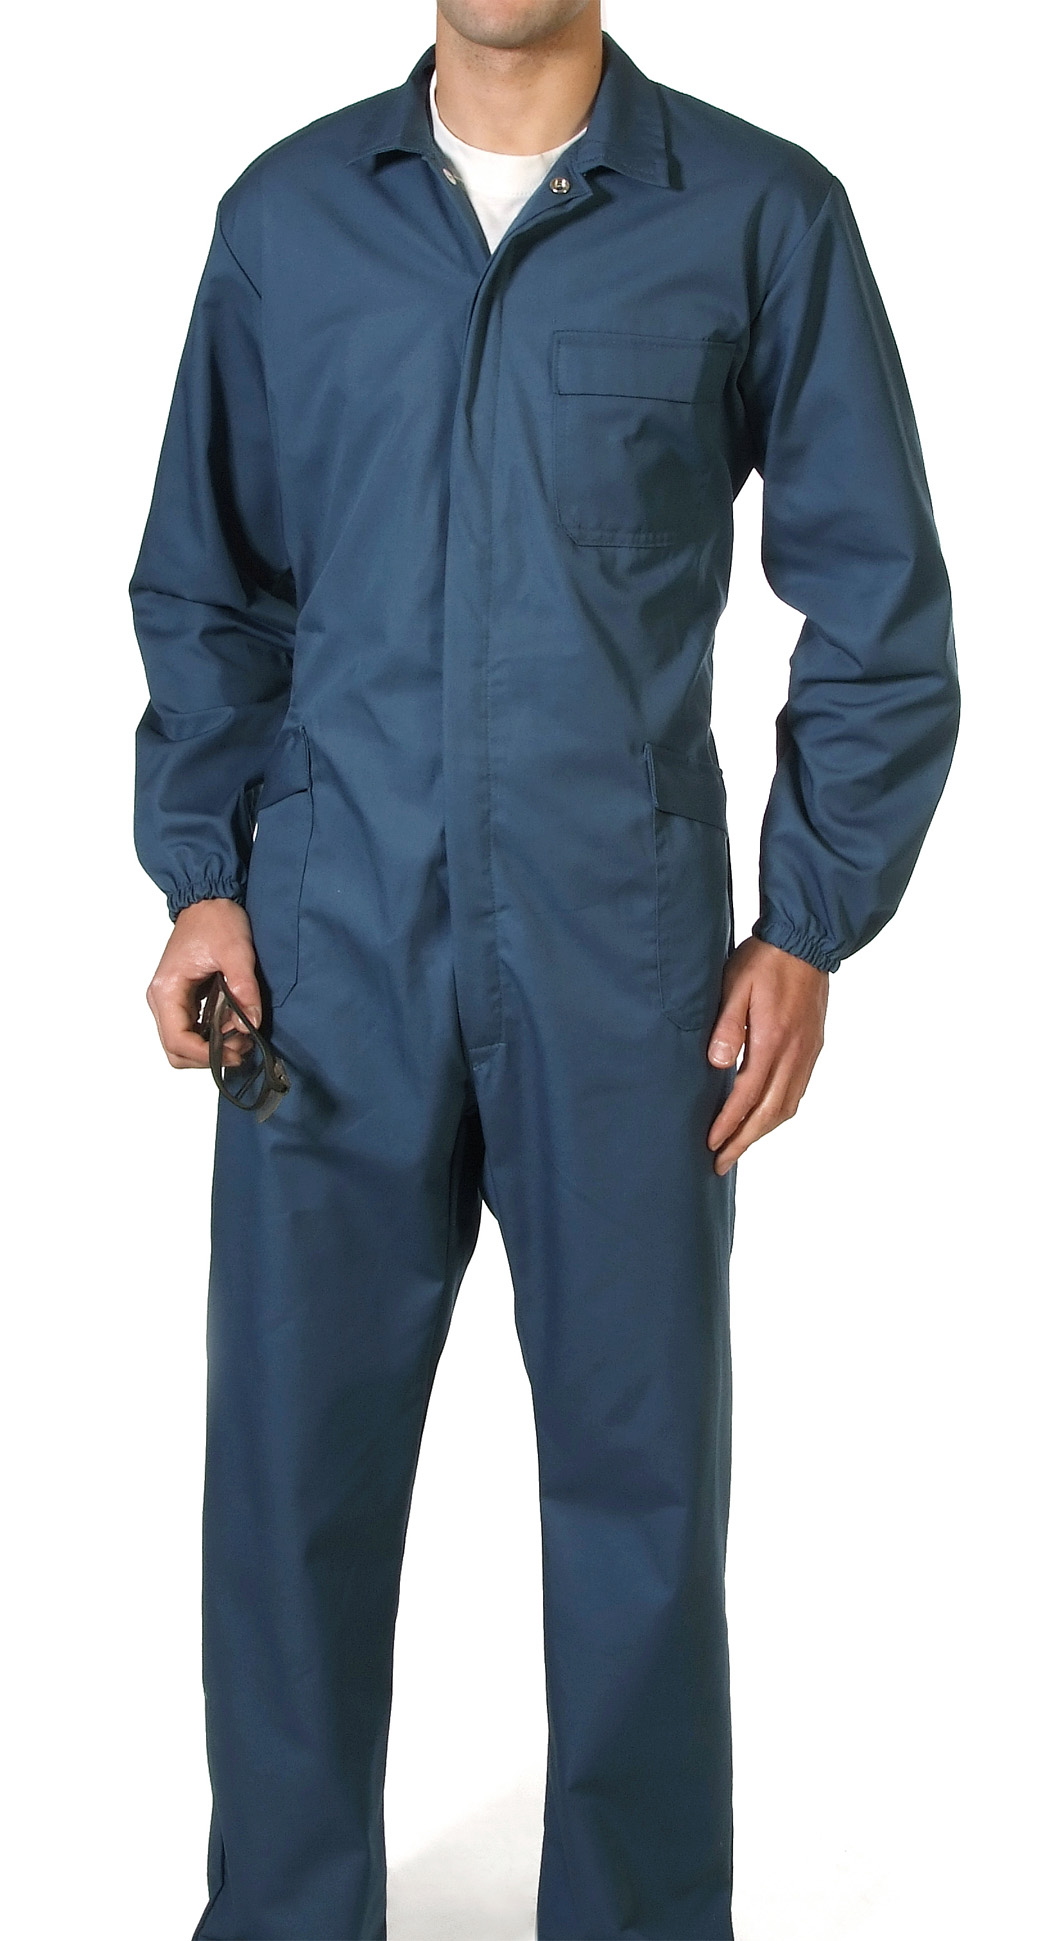 Coverall Acid resistant Image